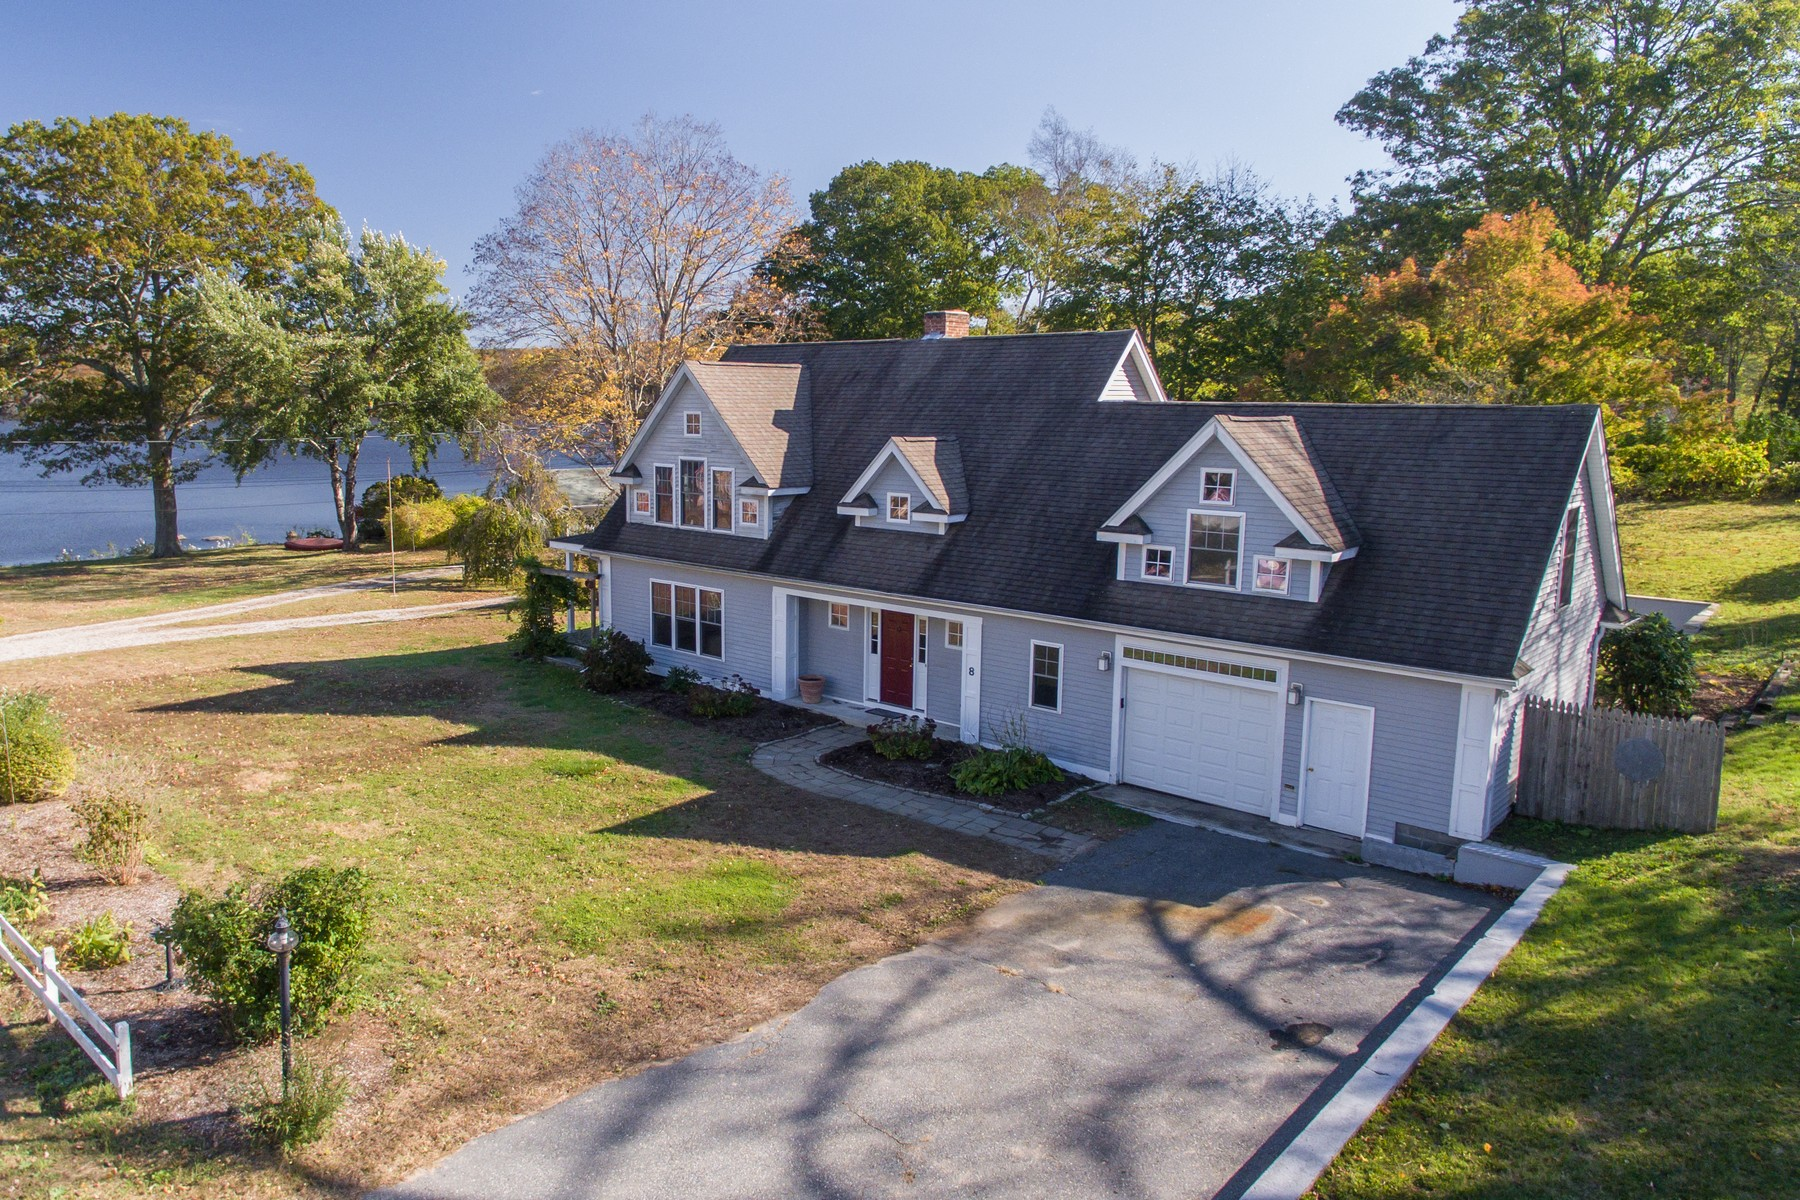 Single Family Homes for Sale at Beautiful Light-Filled Home 8 South Cove Lane Essex, Connecticut 06426 United States